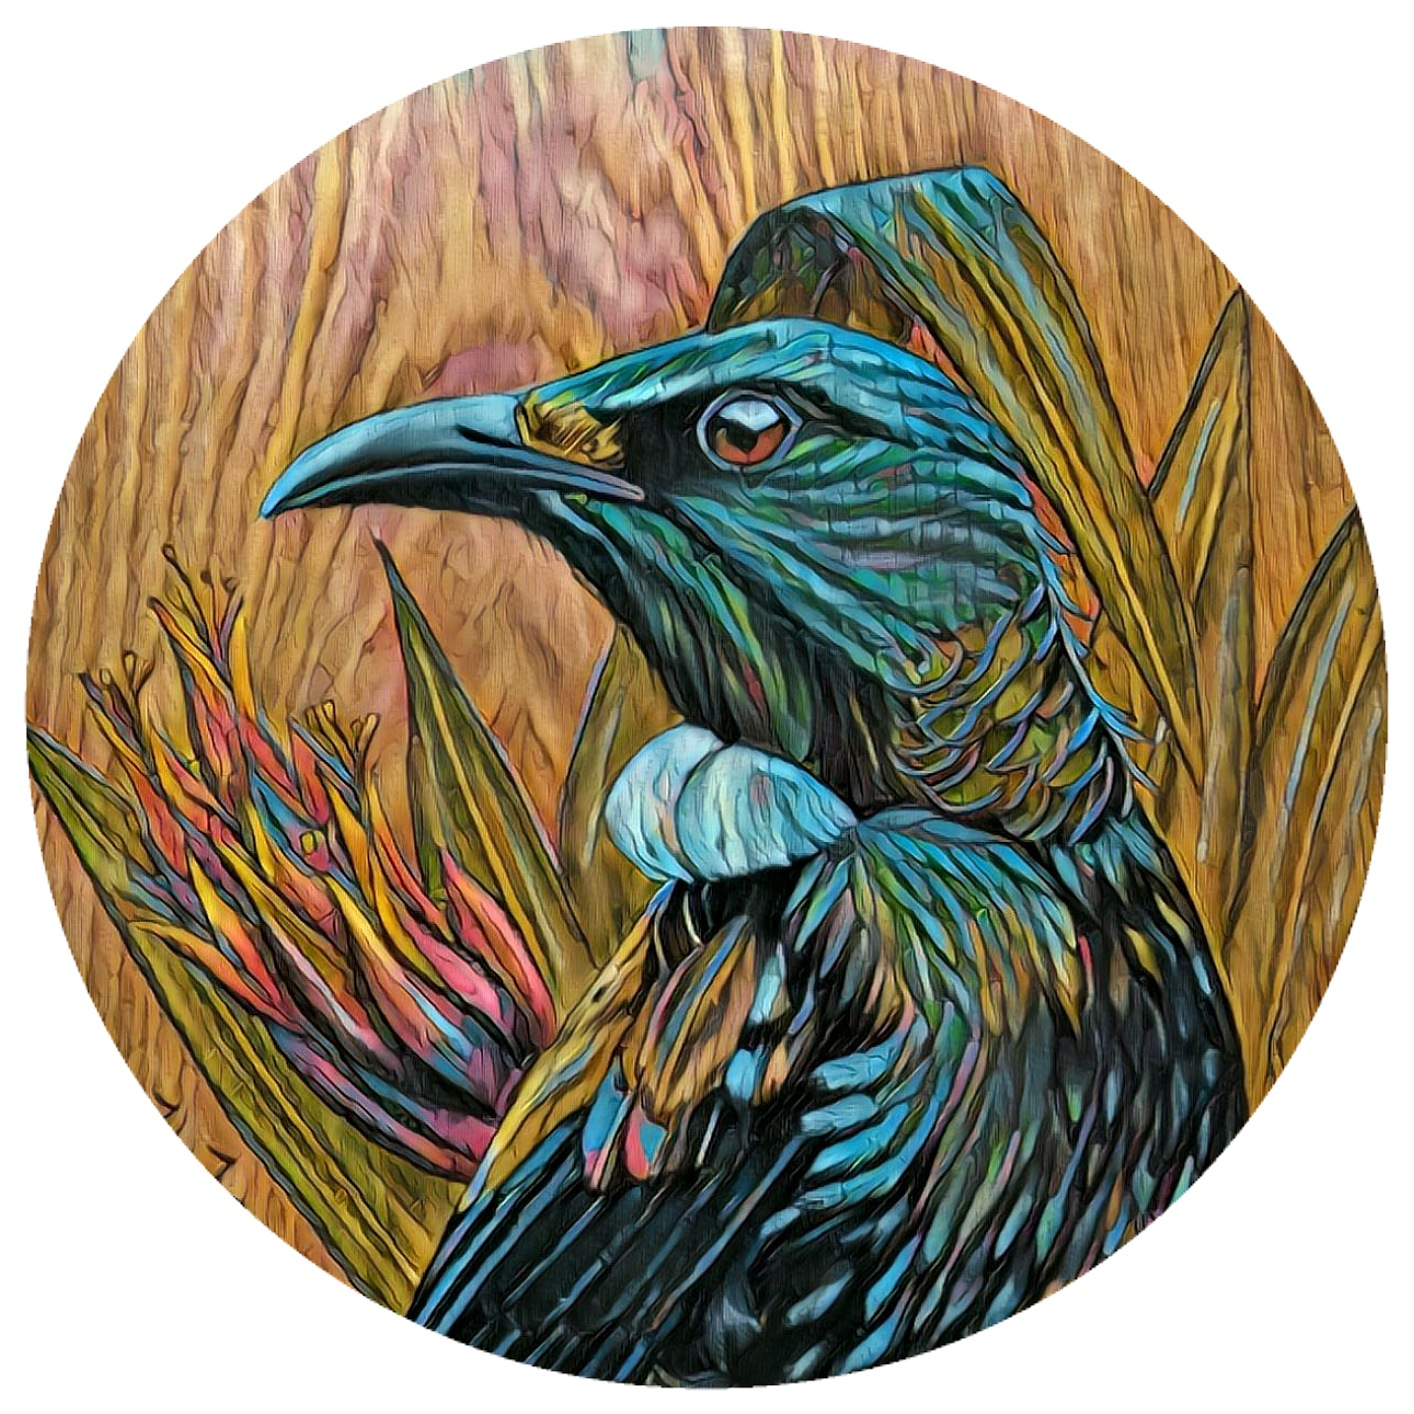 TUI IN FLAX UPON TIMBER REWORKED ART DOT 280MM DIAMETER via @chooicenz